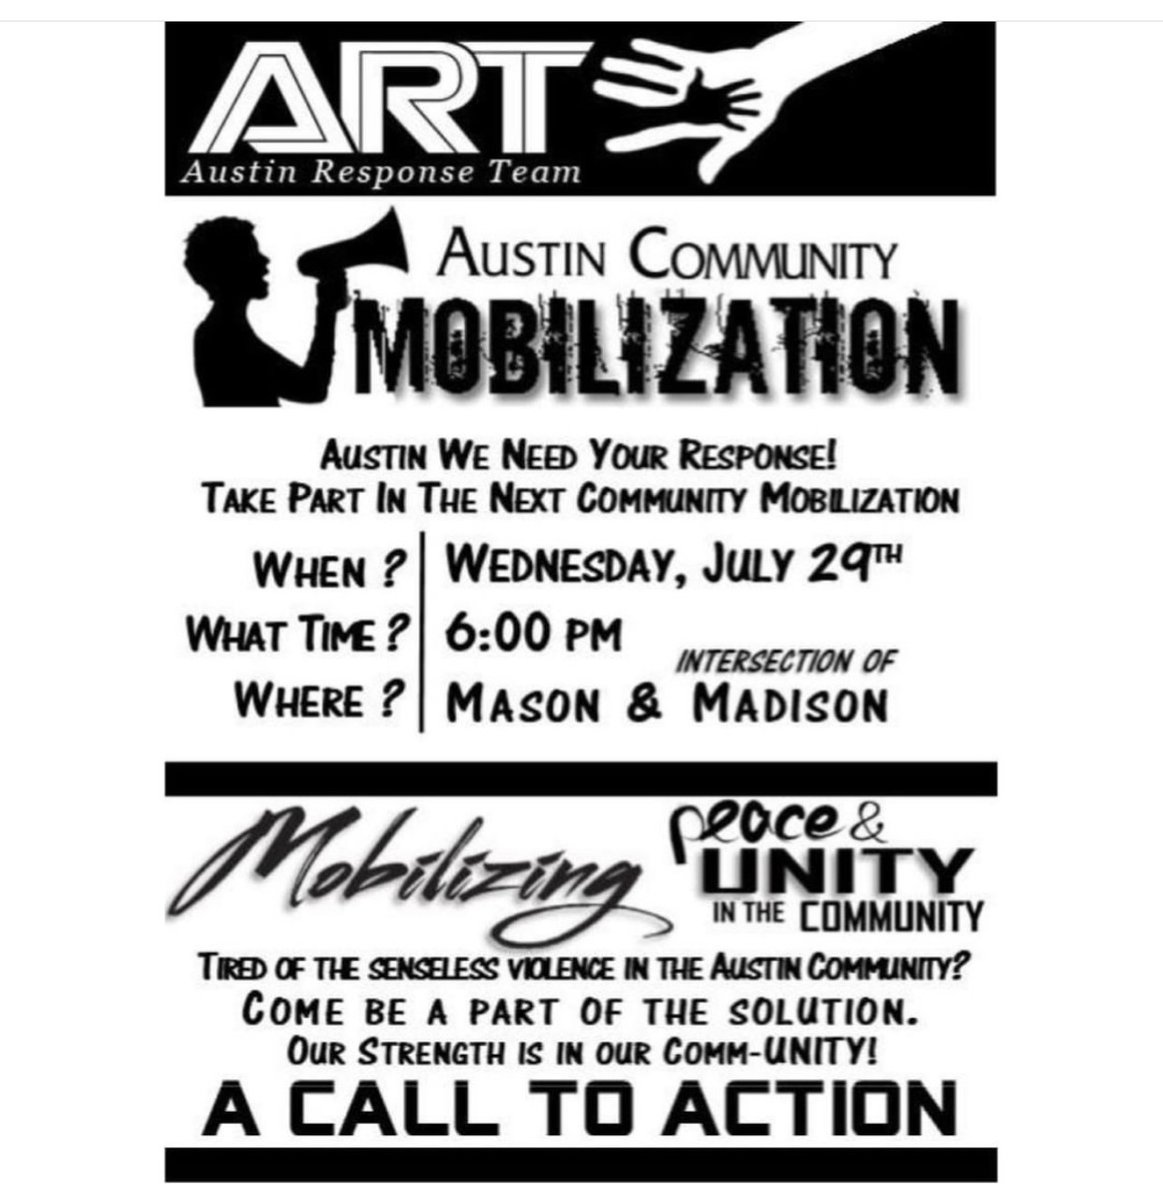 Today @ChicagoCAPS15 with Area 4 Community Area Response Team hosted The Austin Community Mobilization at Mason and Madison. #1STV @jr_bady, @CCSOPIO, @cookcountysao,Summer Mobile, and other community stakeholders all assembled for mobilizing peace and unity in the community.